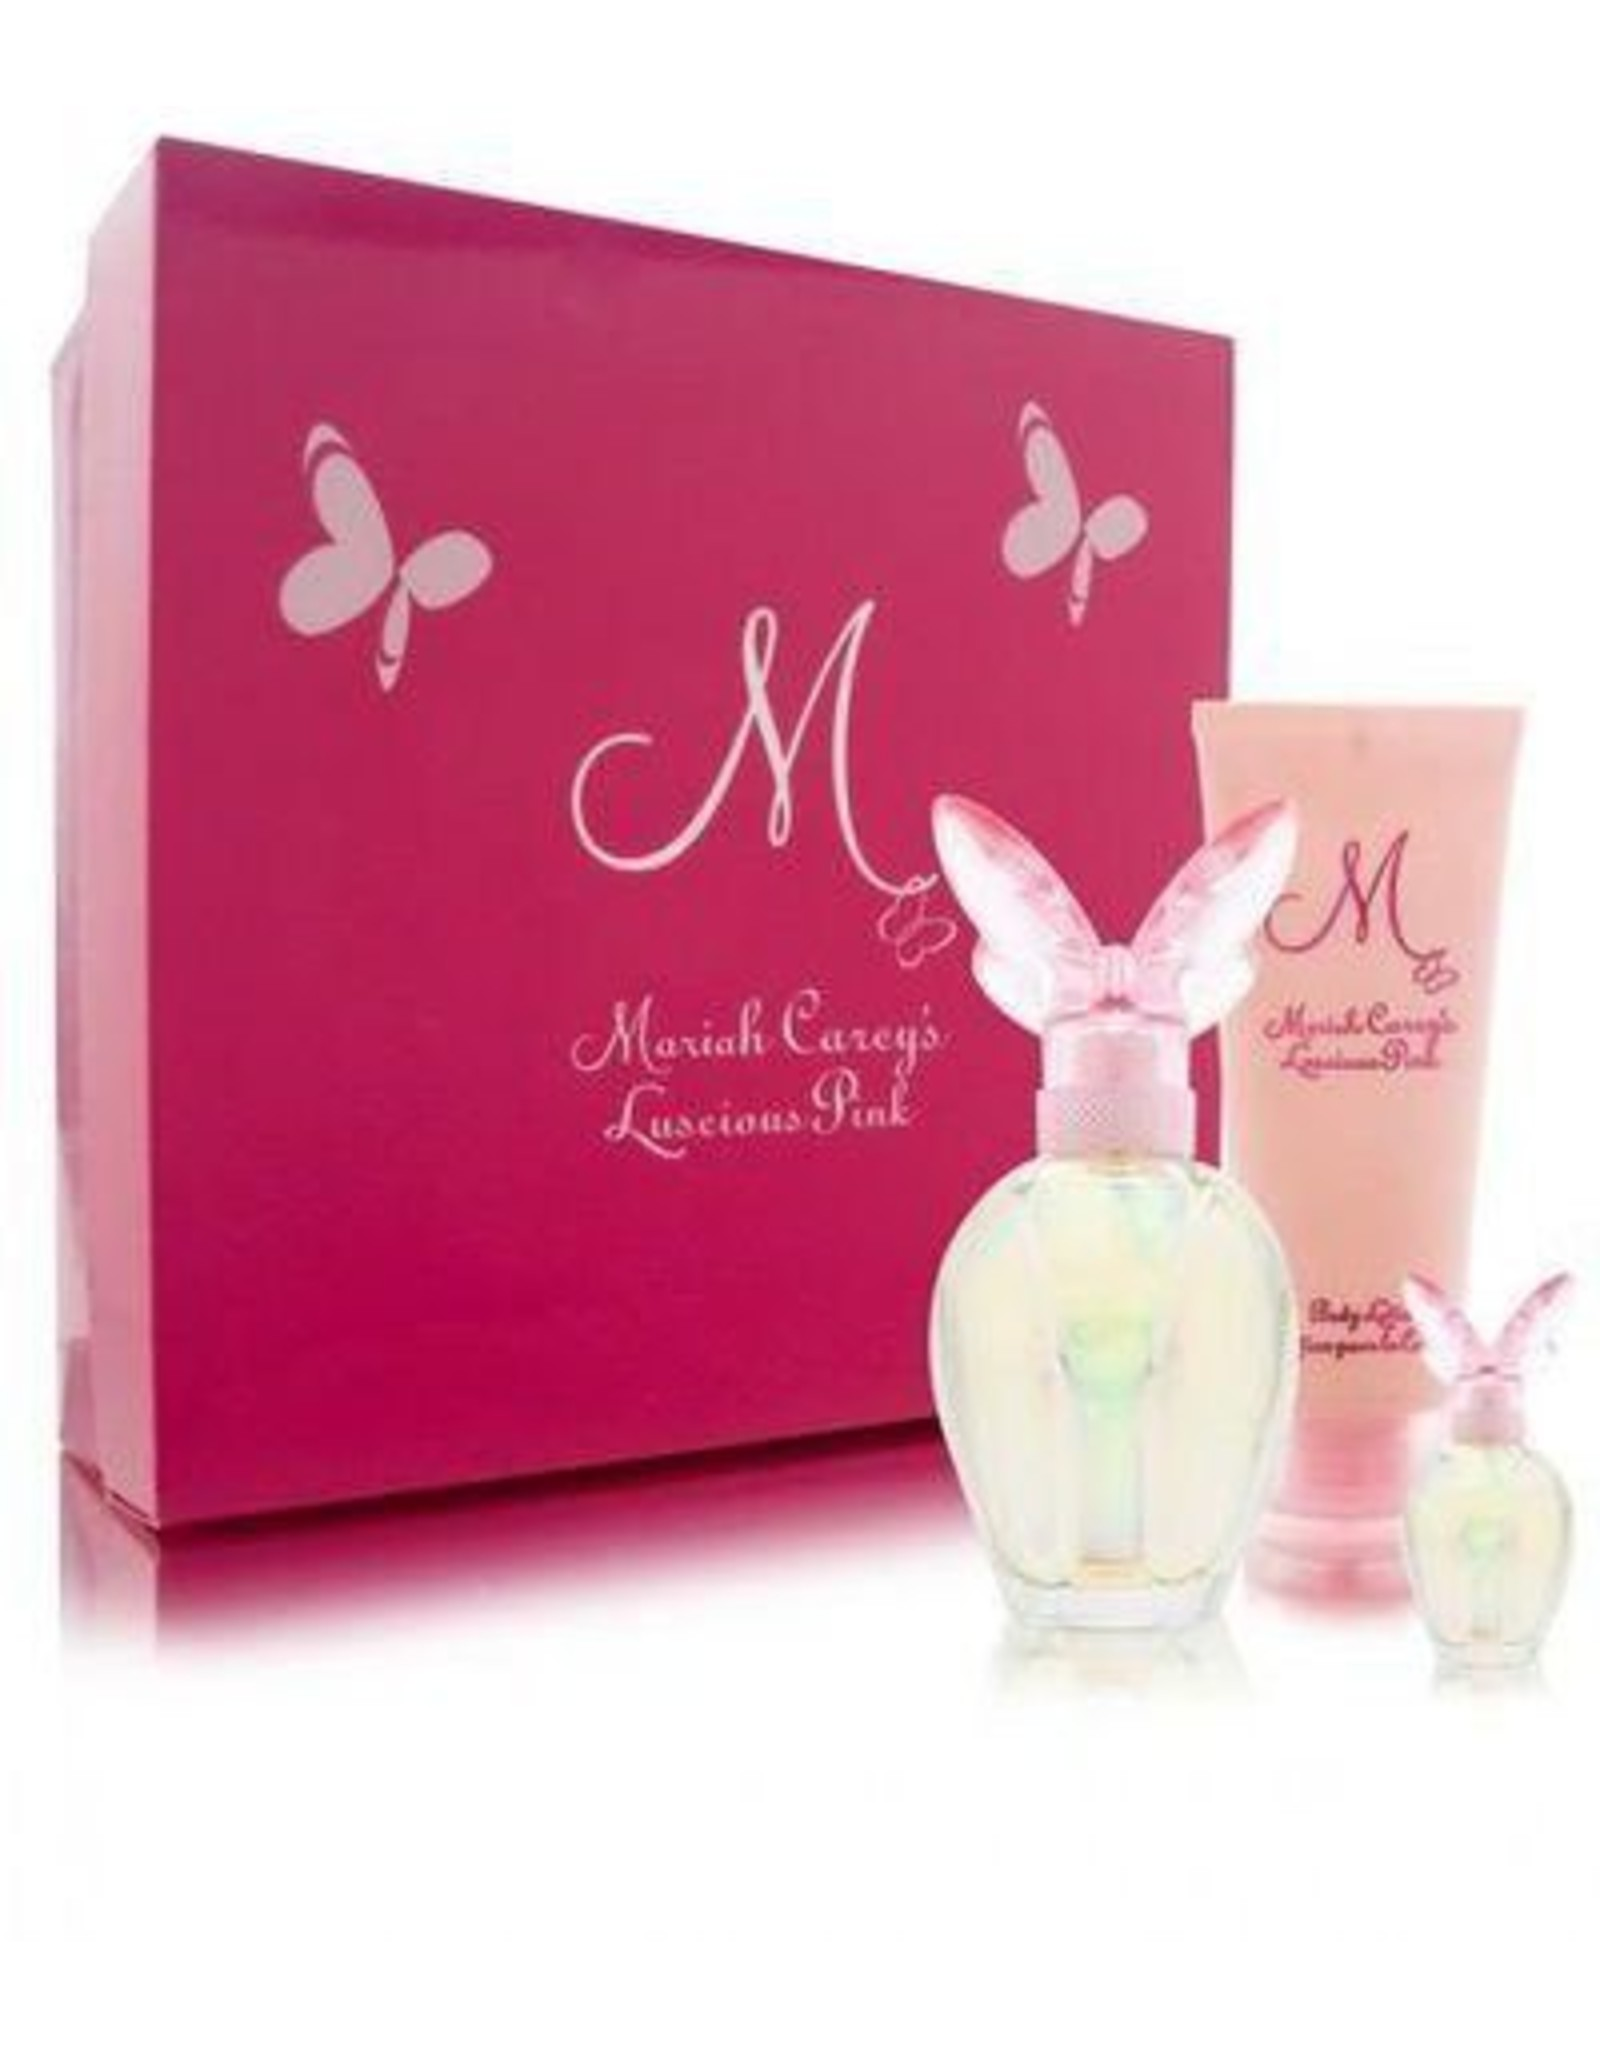 MARIAH CAREY MARIAH CAREY LUSCIOUS PINK 3pcs Set